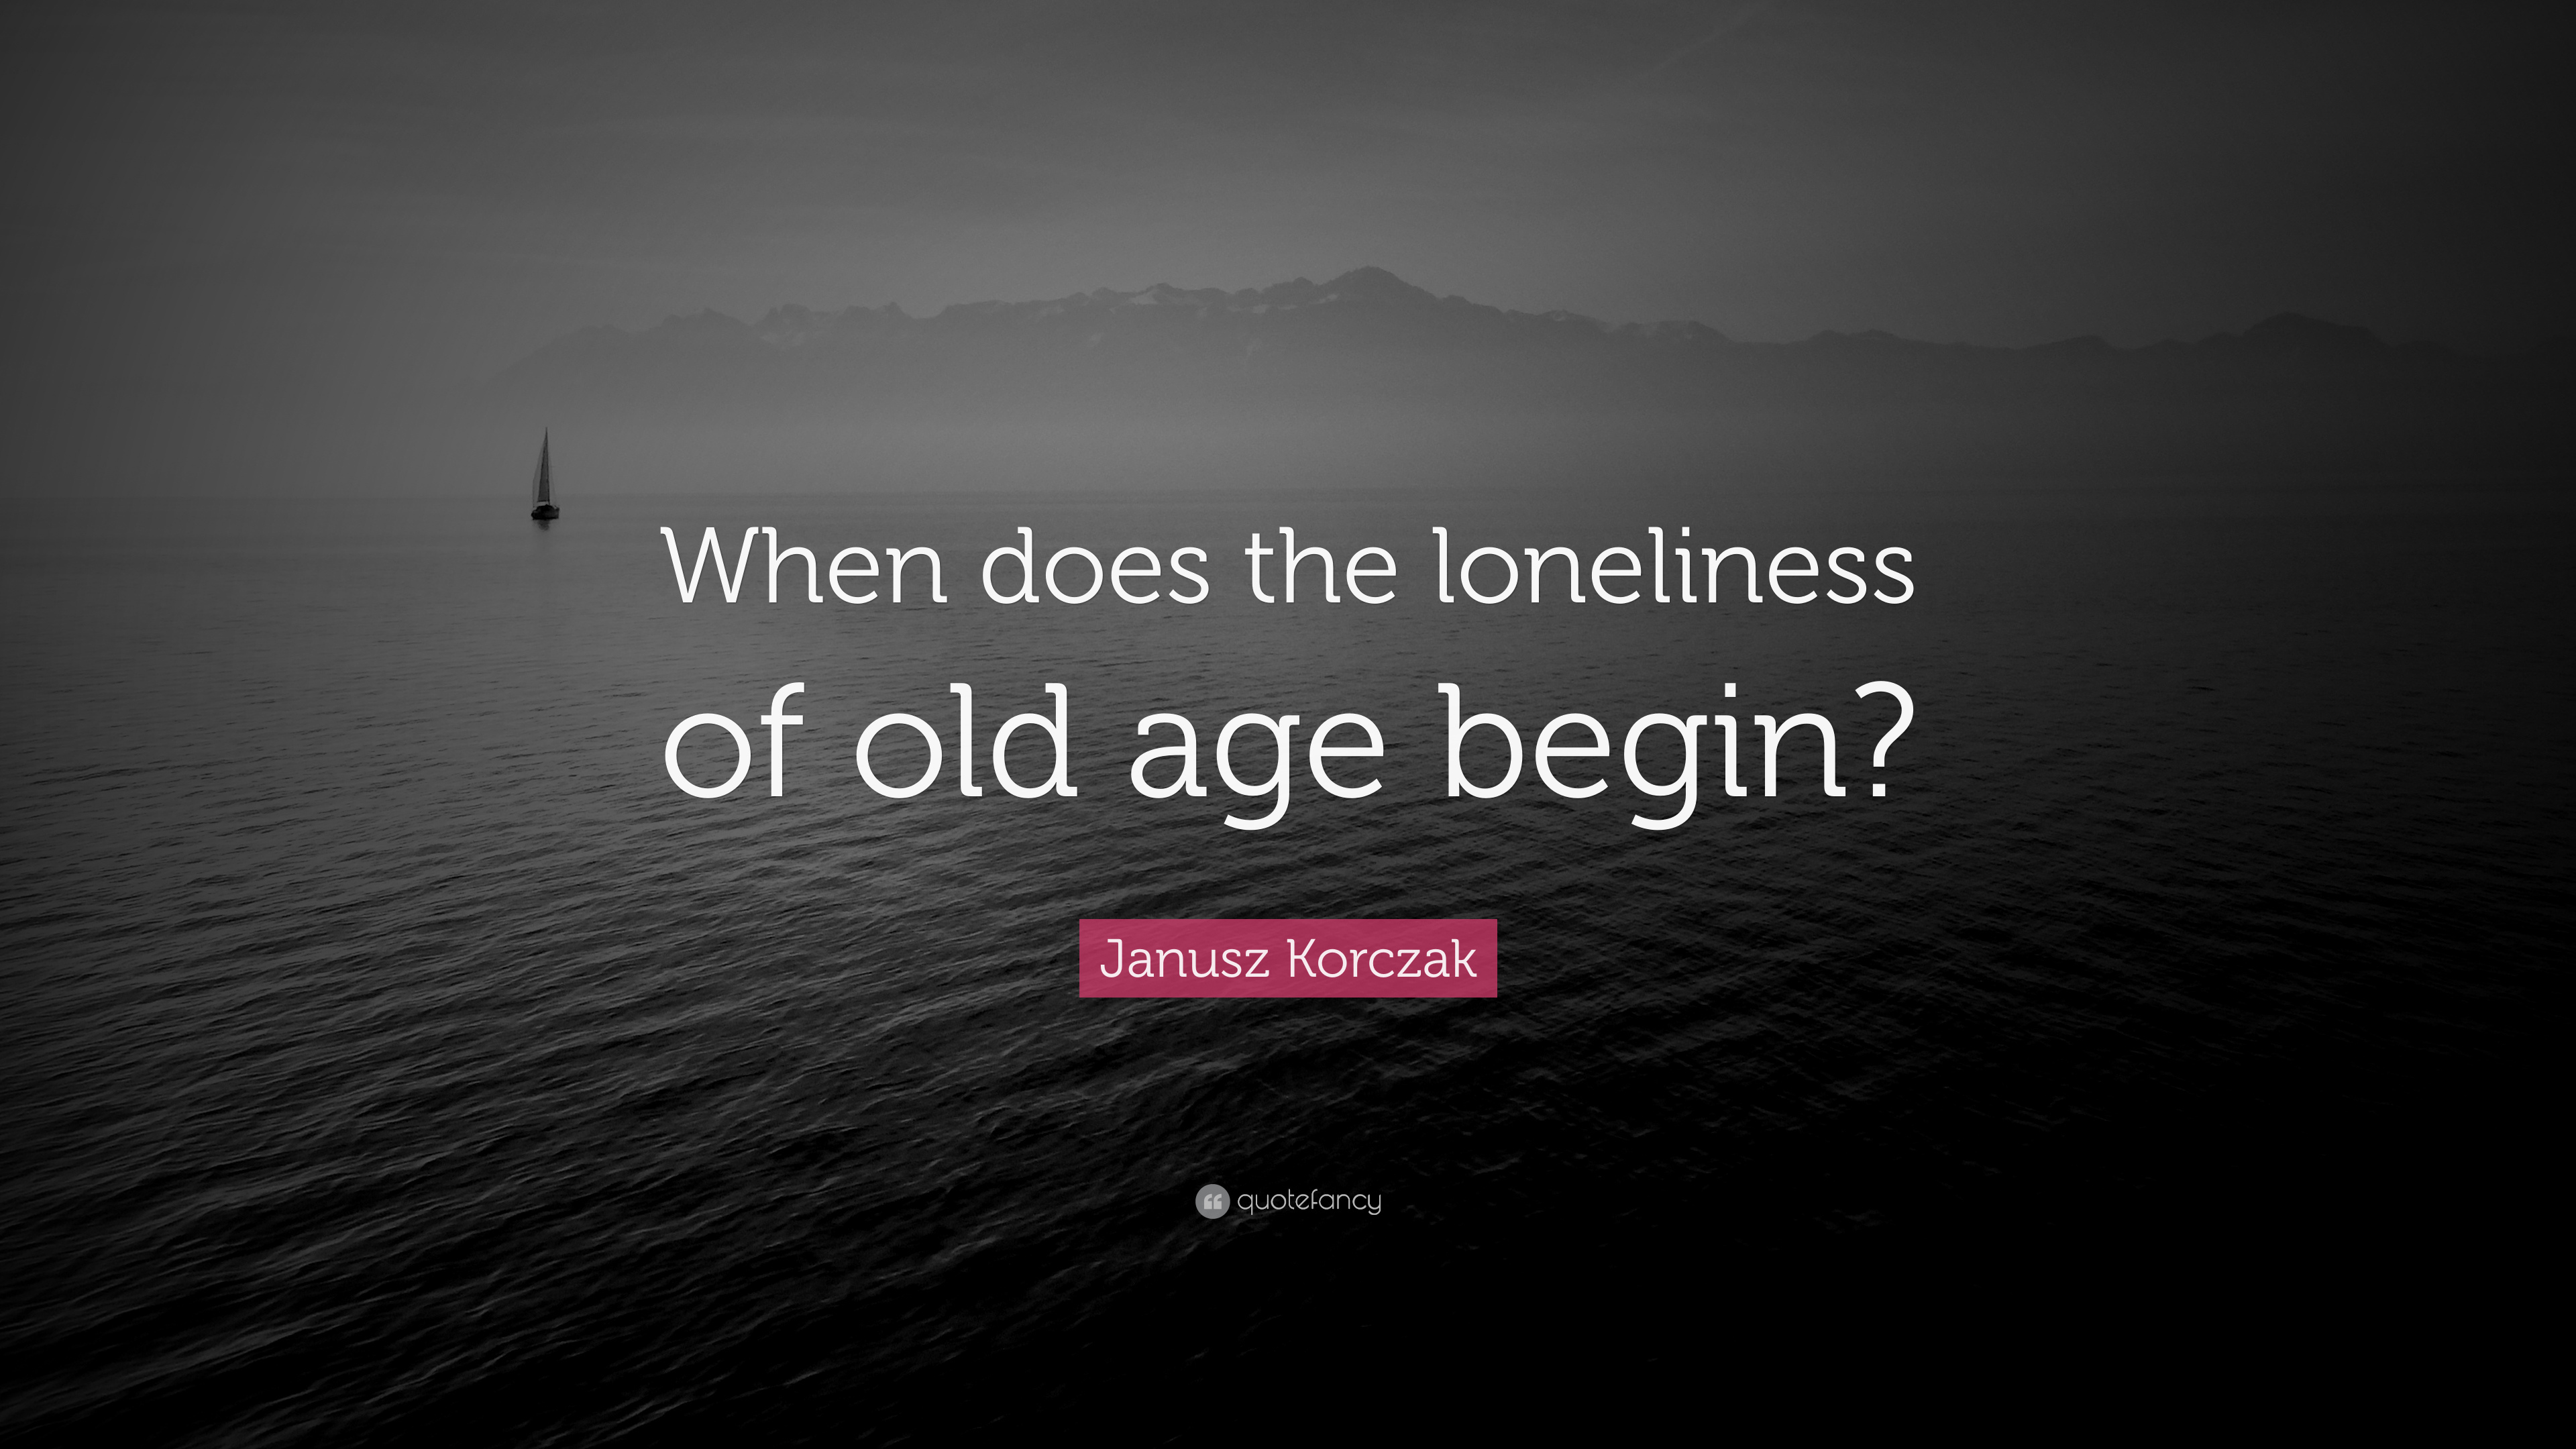 Loneliness of old age essay